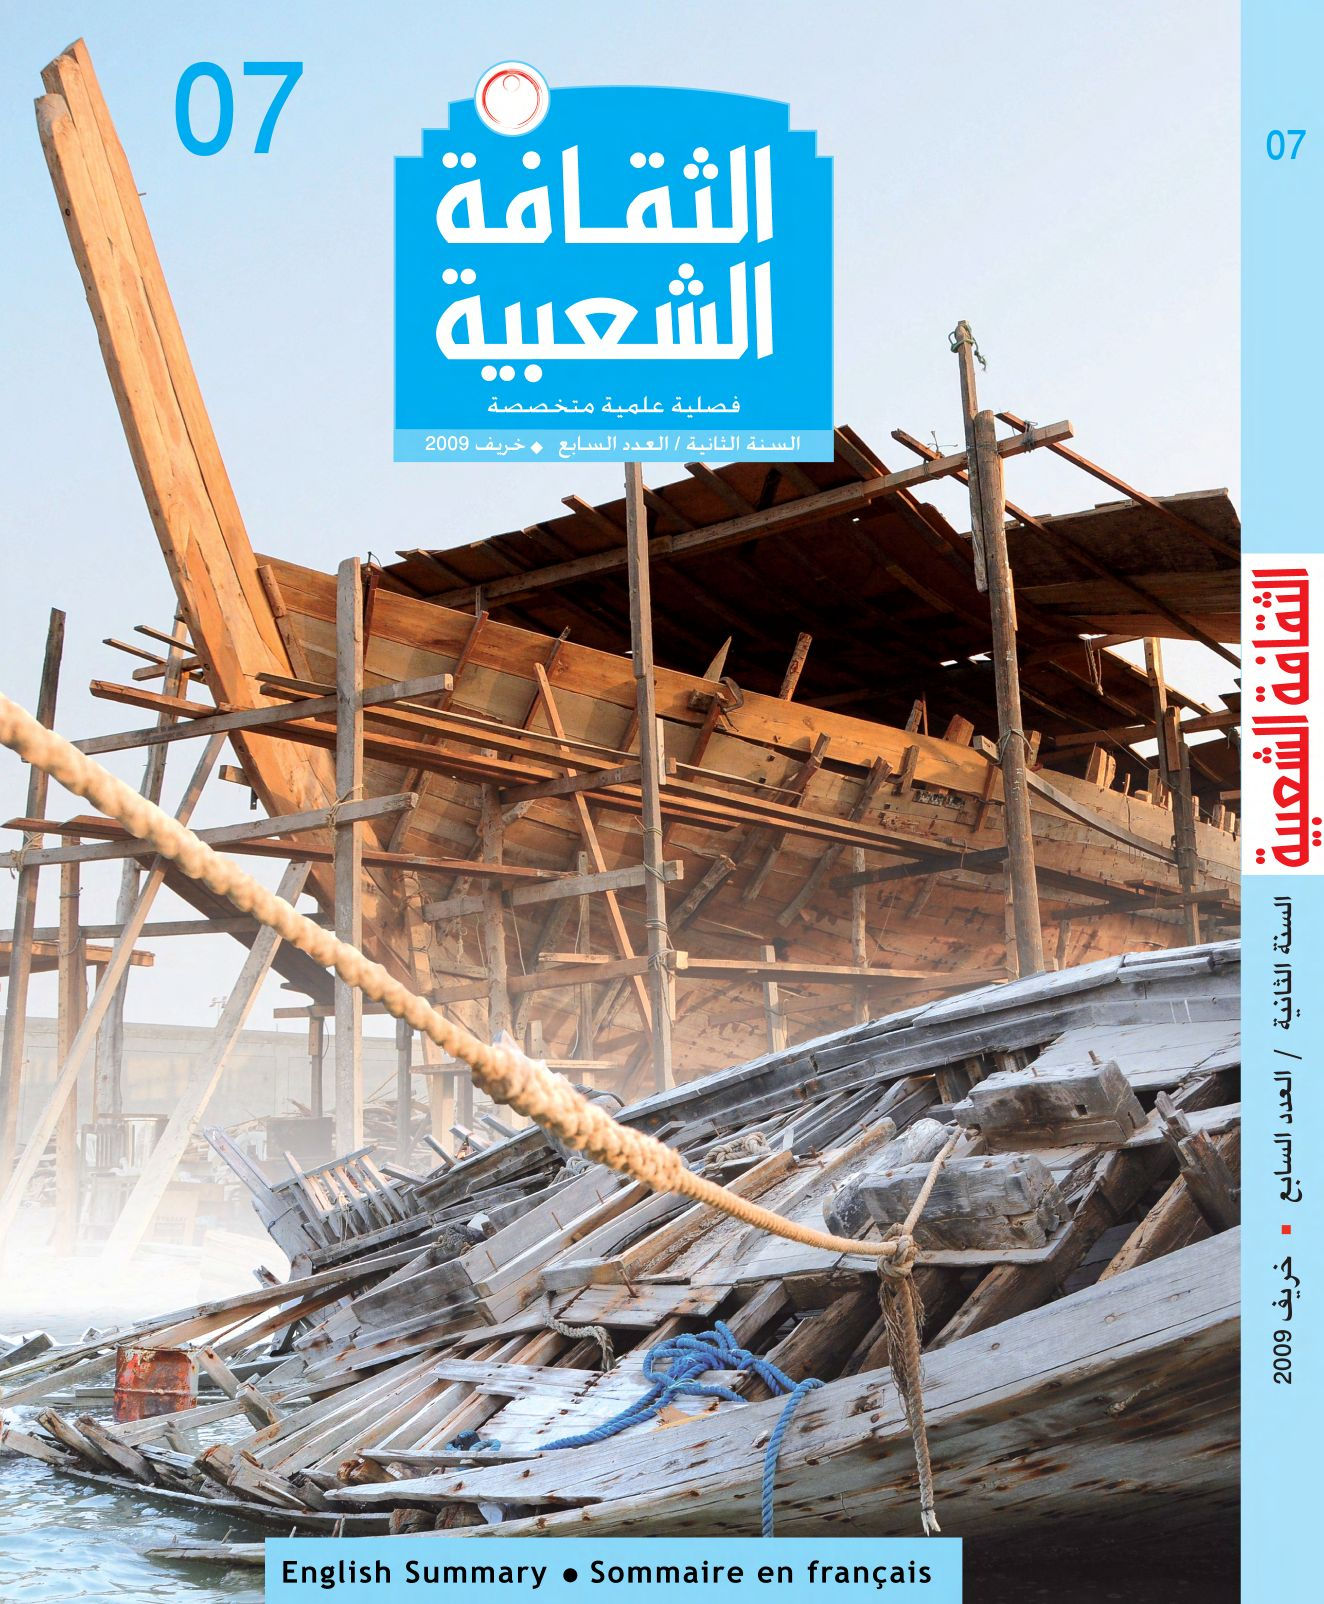 9d161a611 Folk Culture Magazine from Bahrain by Hassan AlDoy - issuu